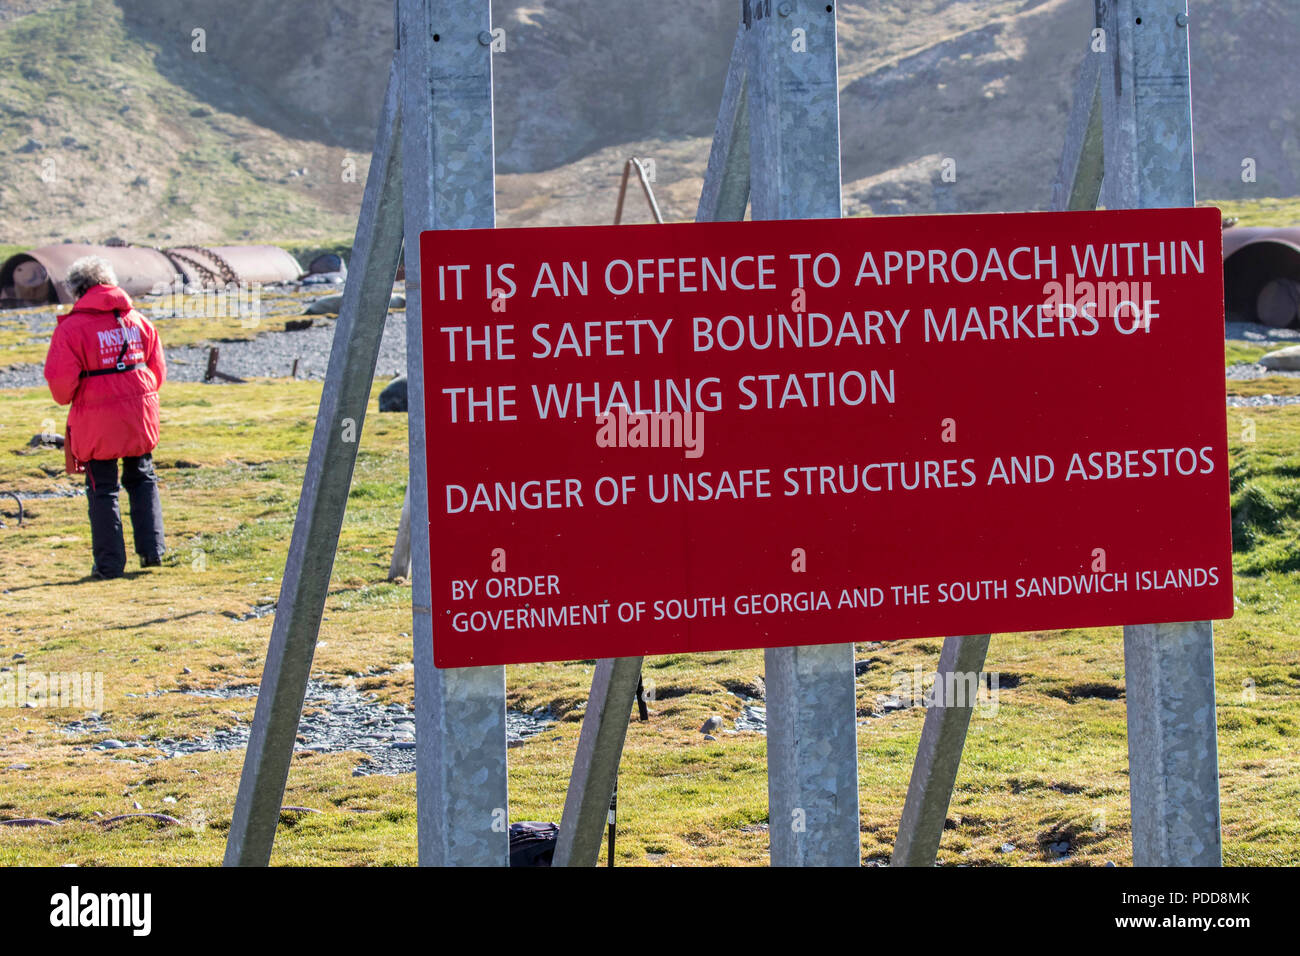 Warning sign at an abandoned whaling station in South Georgia - Stock Image